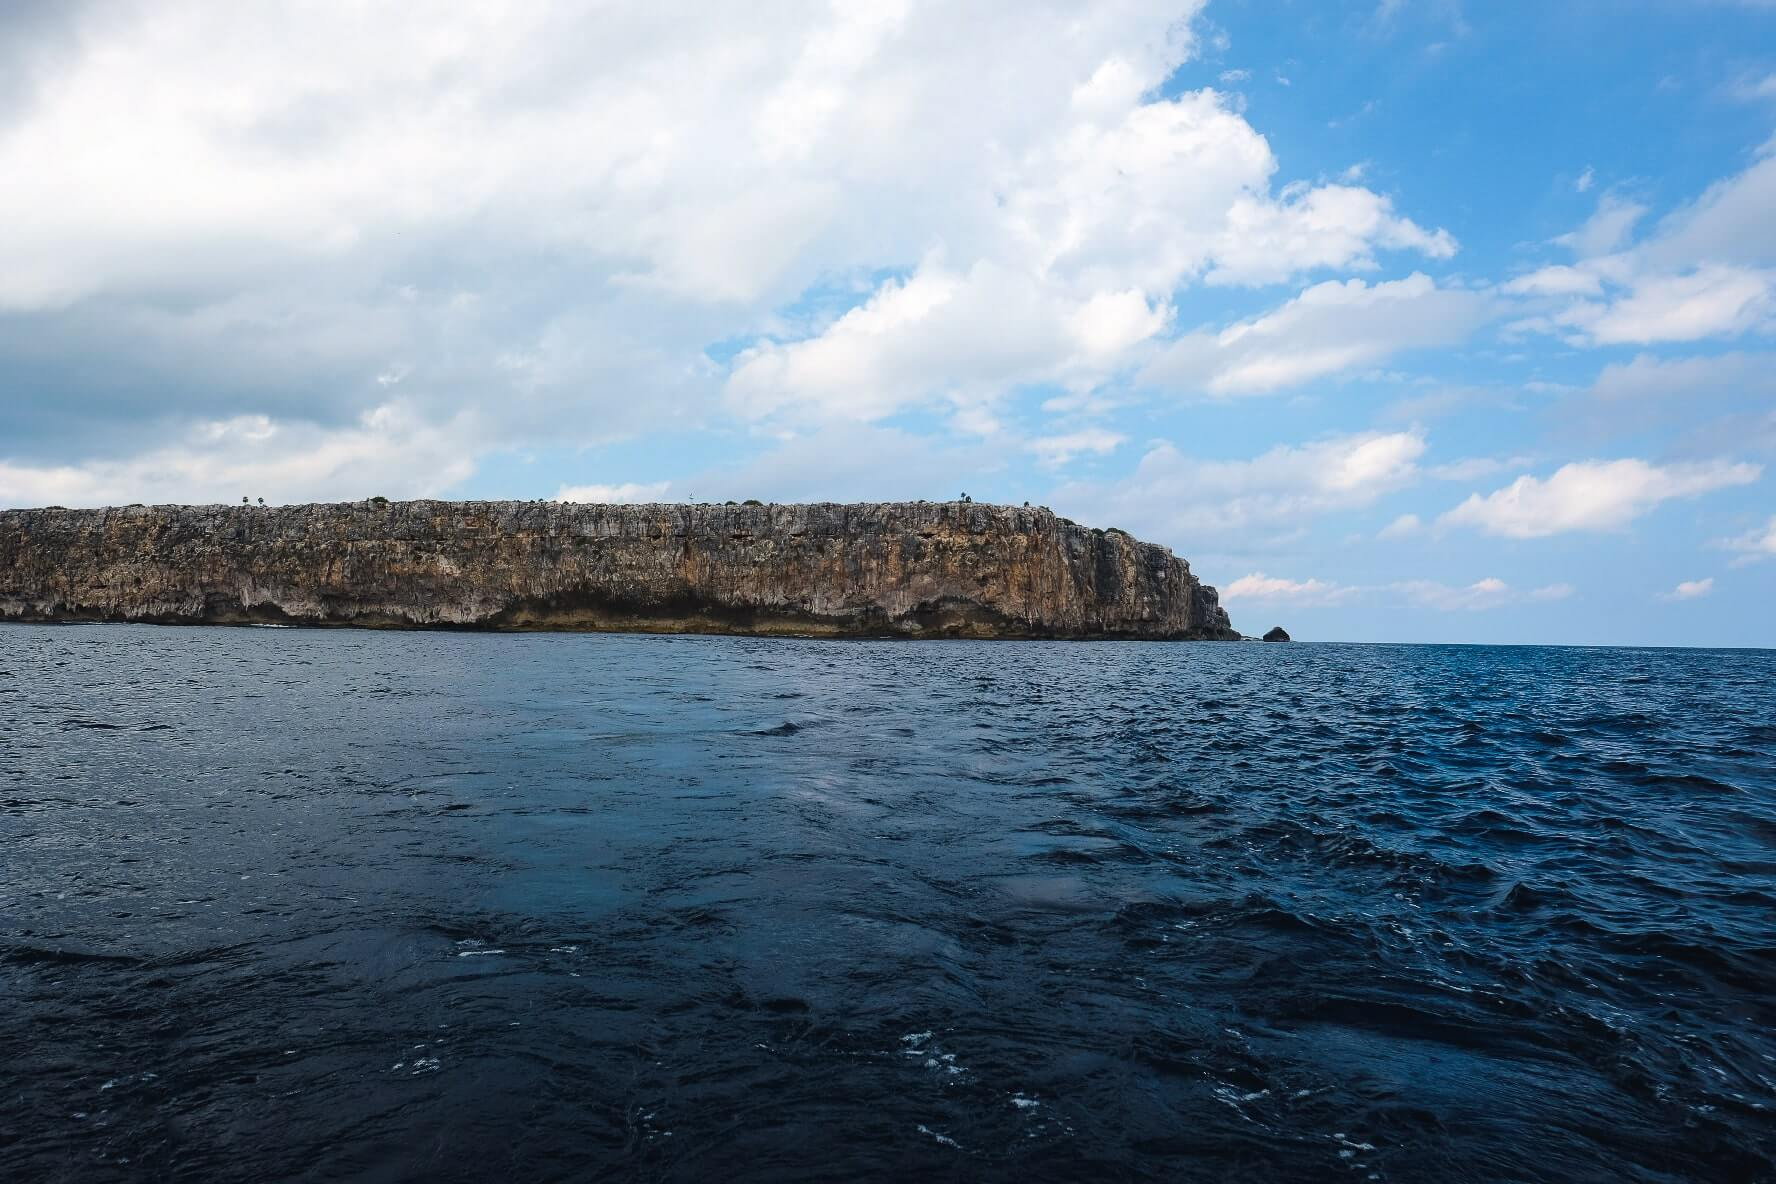 Things to do in Cayman Brac